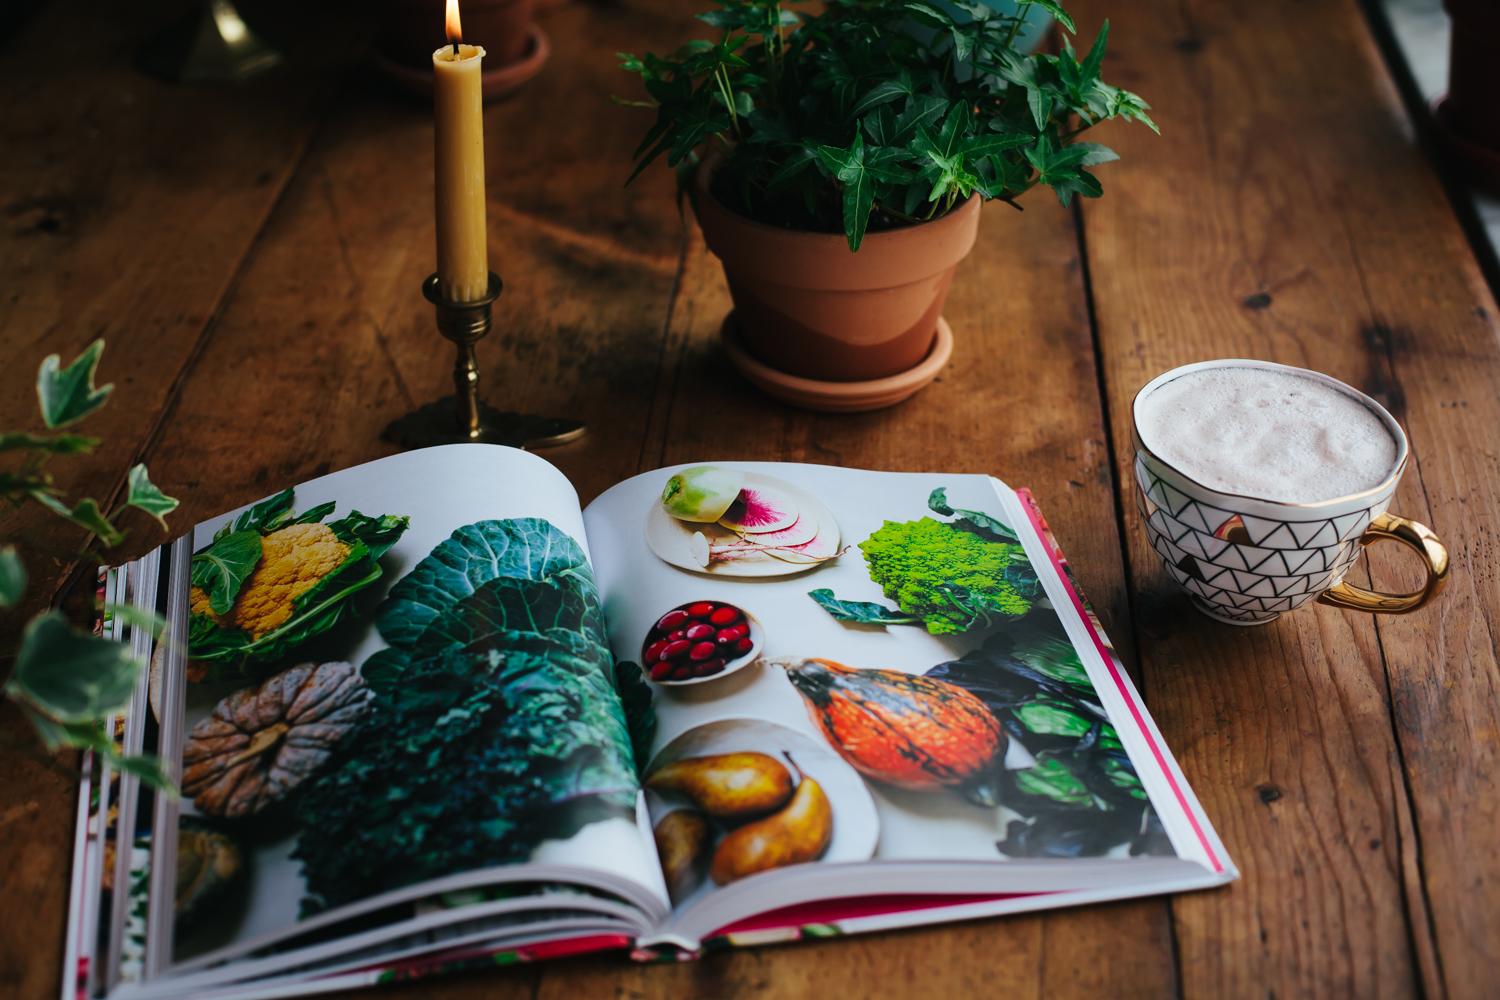 Just Alive, a new cooking book by Anya Kassoff and Masha Davydova